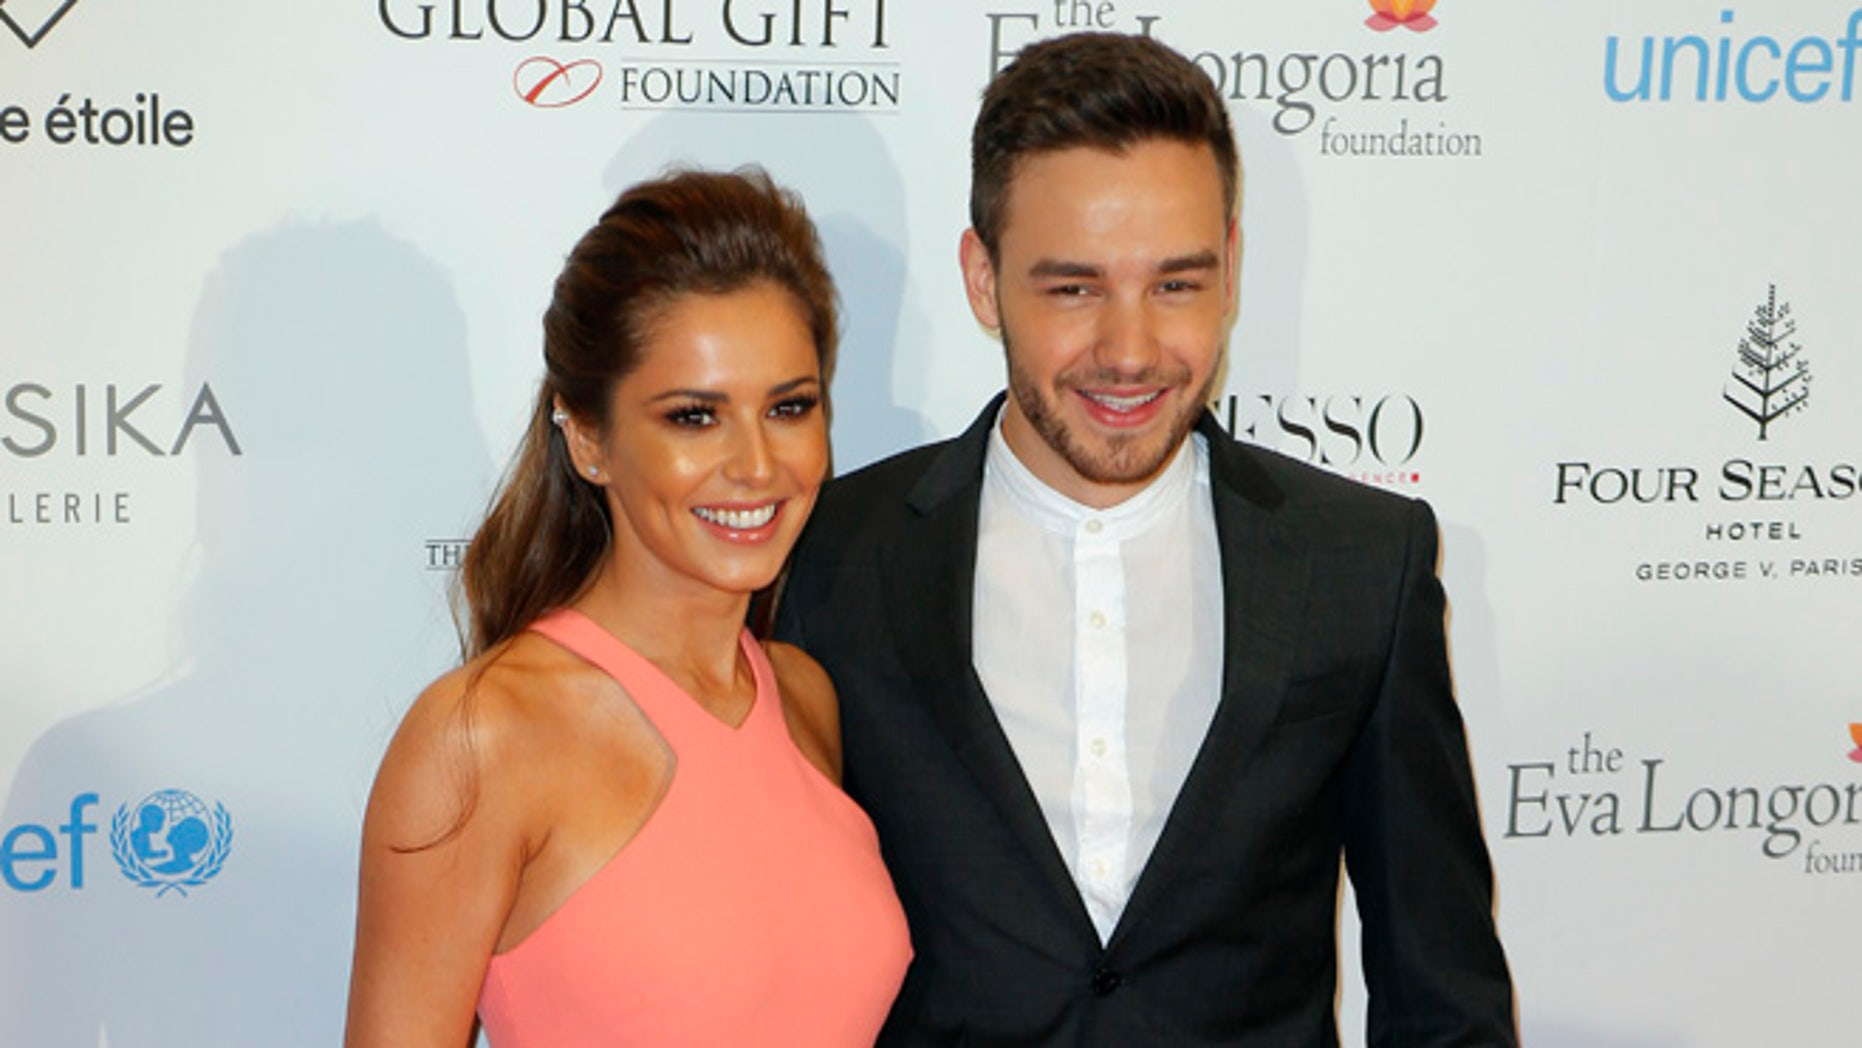 Cheryl Cole and Liam Payne announced the birth of their baby son.